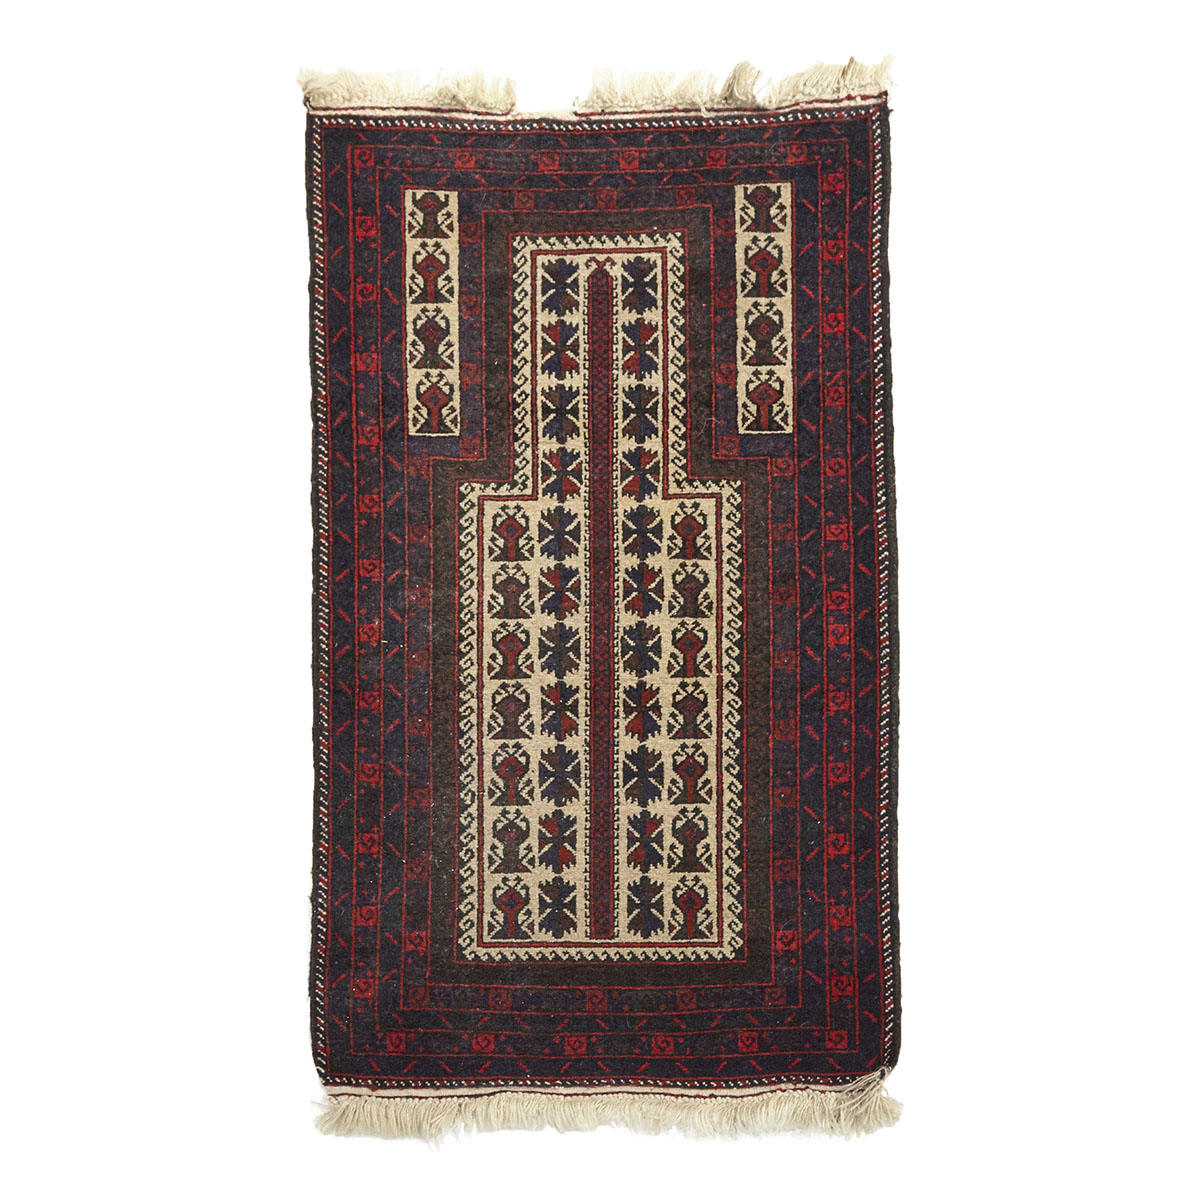 Belouchi Prayer Rug, late 20th century